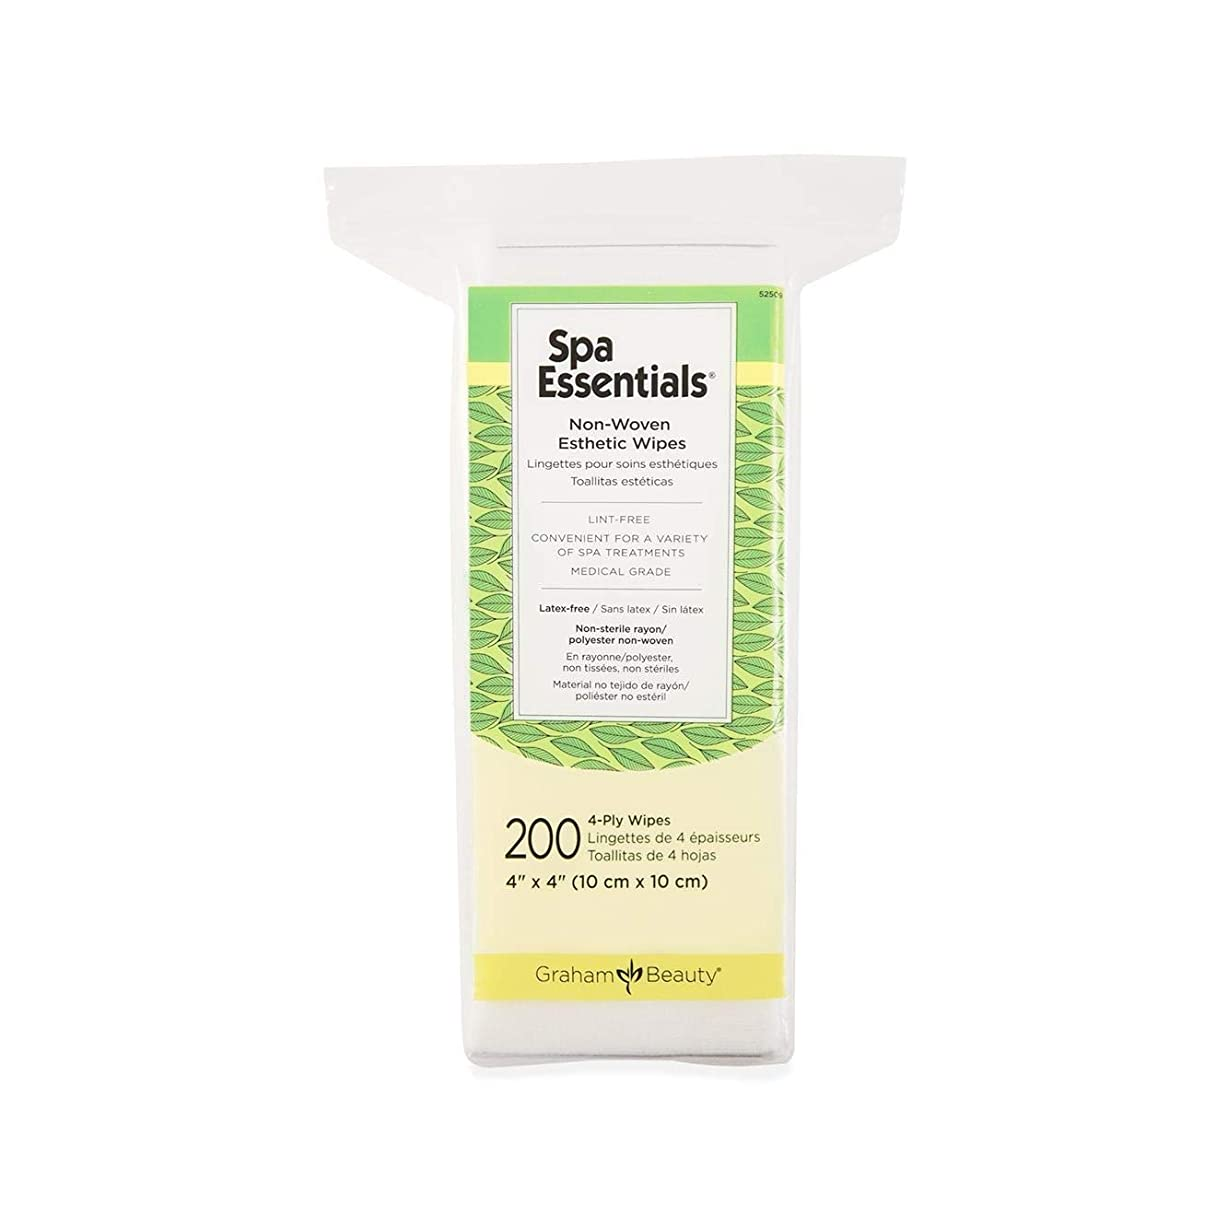 専門知識敬の念家事Graham Spa Essentials 2x2 Non-Woven Esthetic Make-Up Wipes,200 count per box